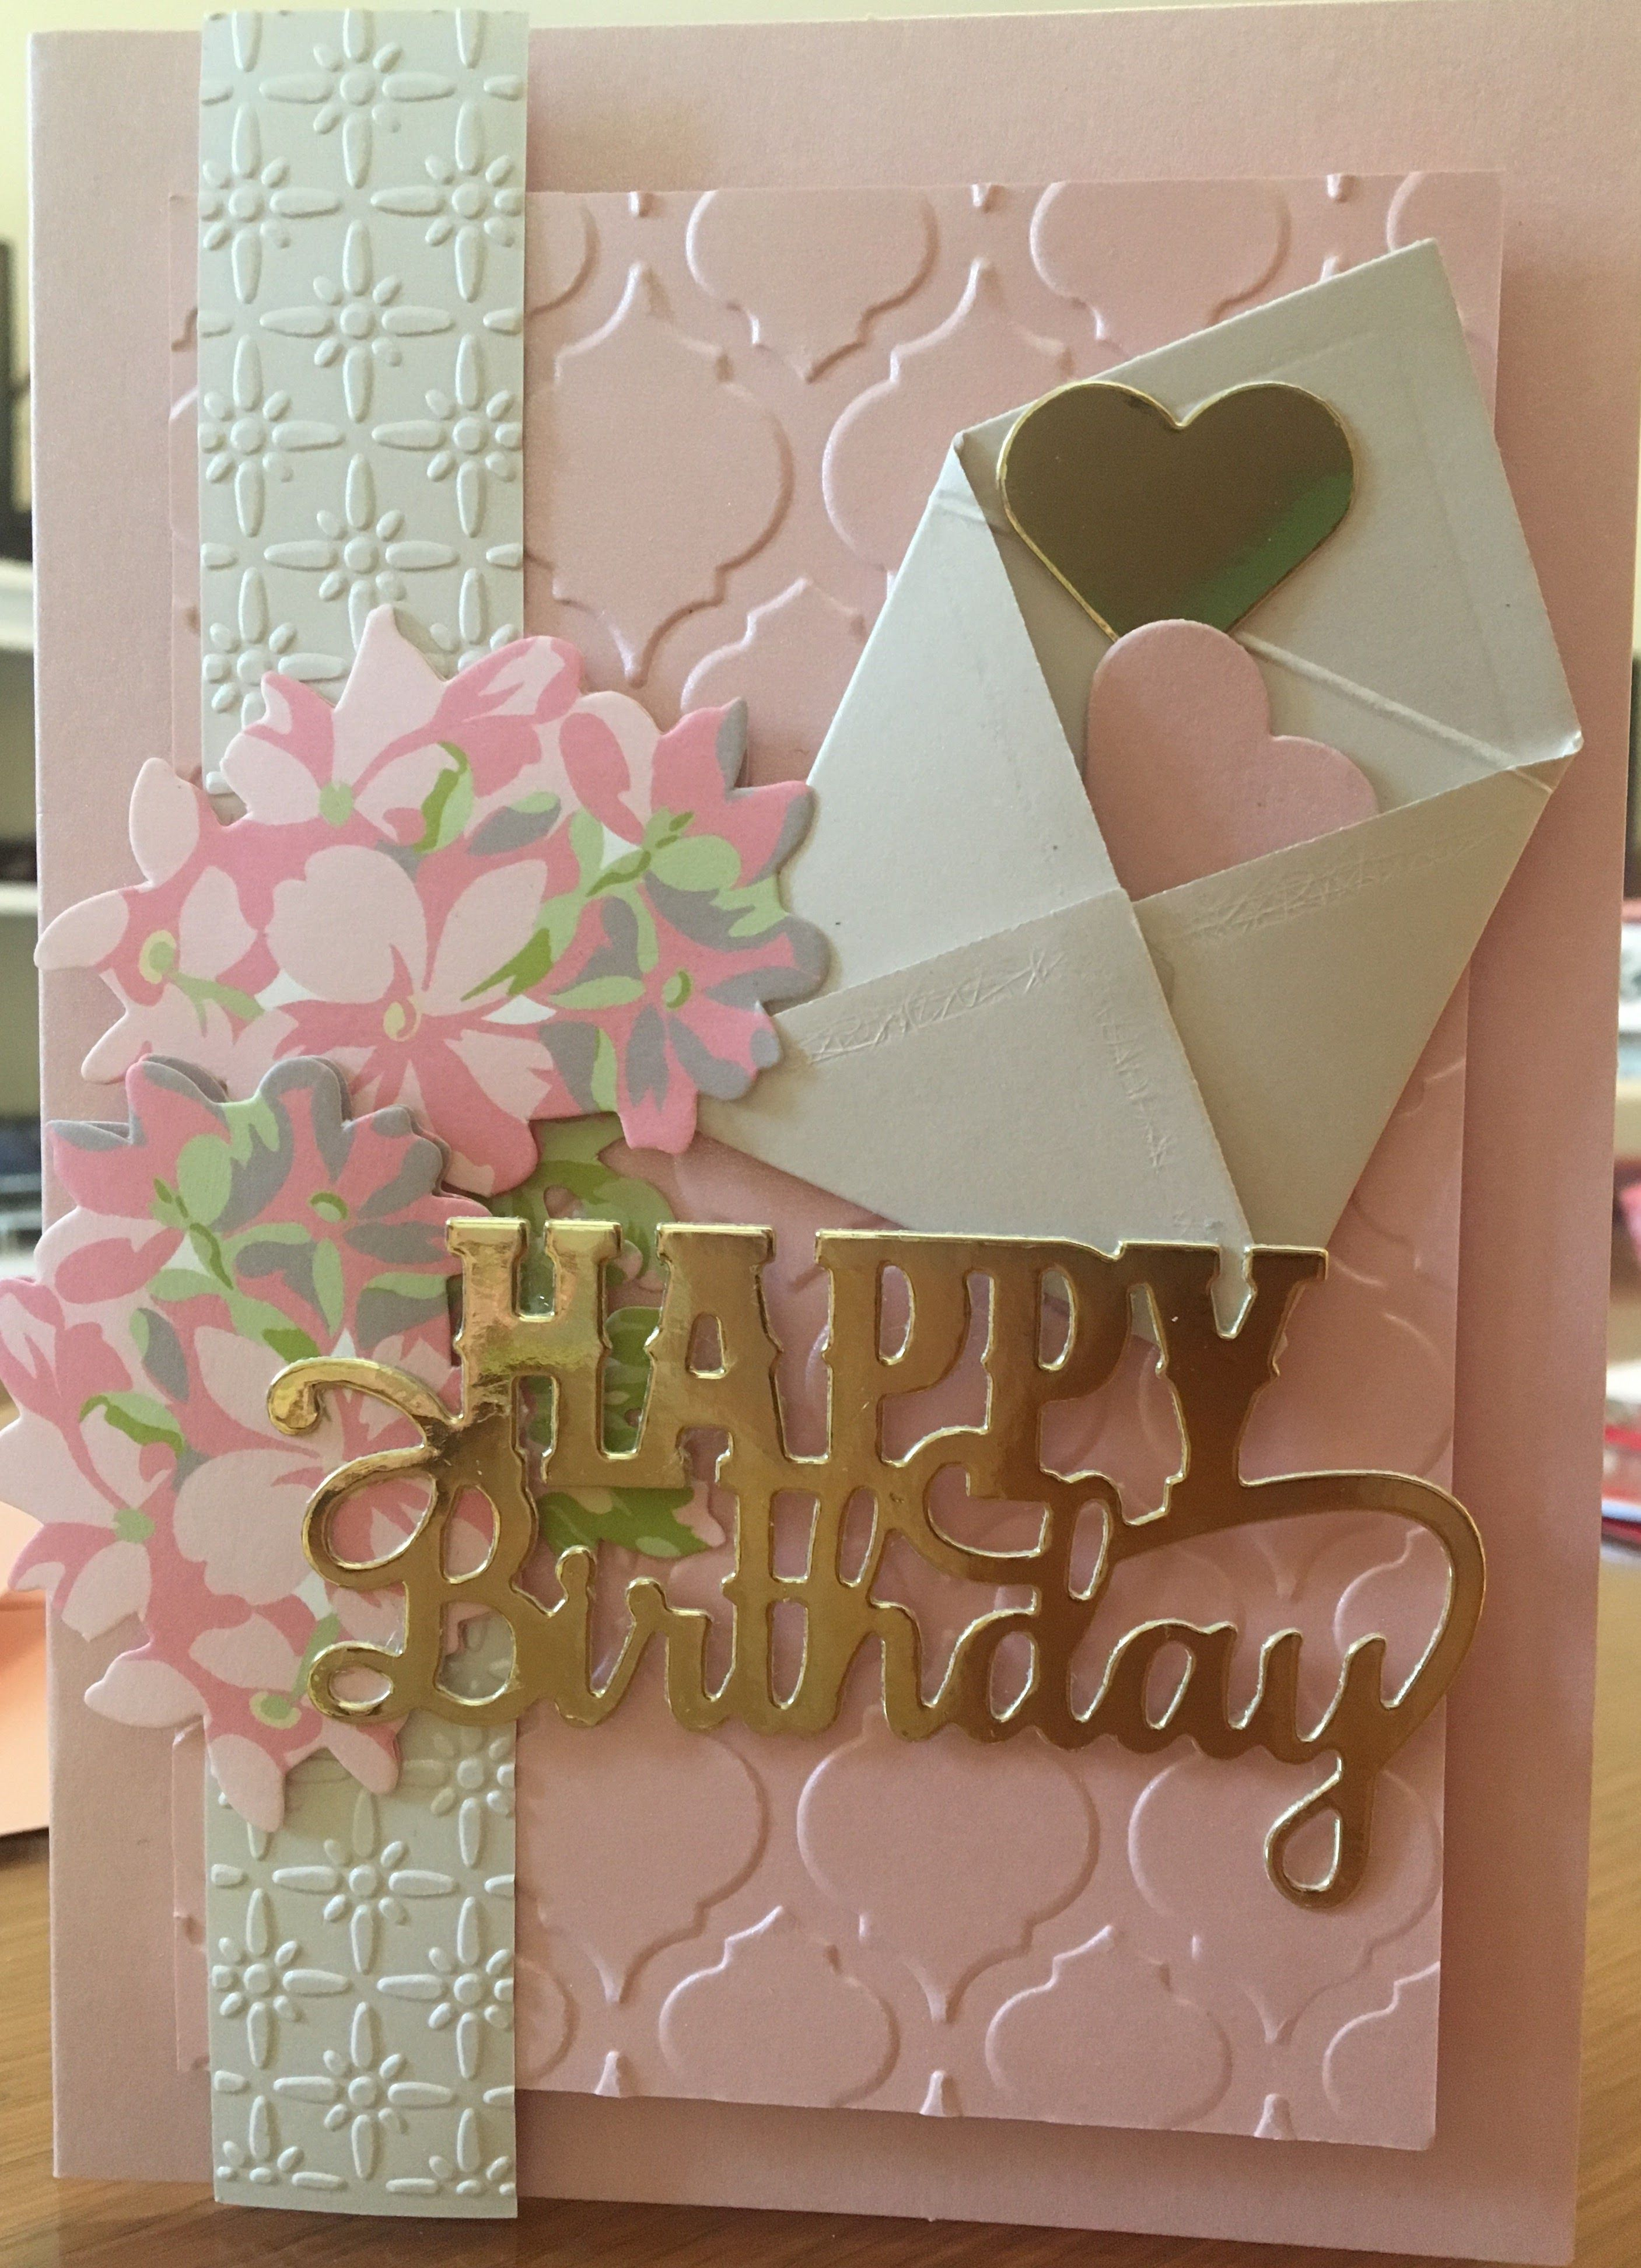 Hand cradted birthday card colorblock by lisa ku stamped